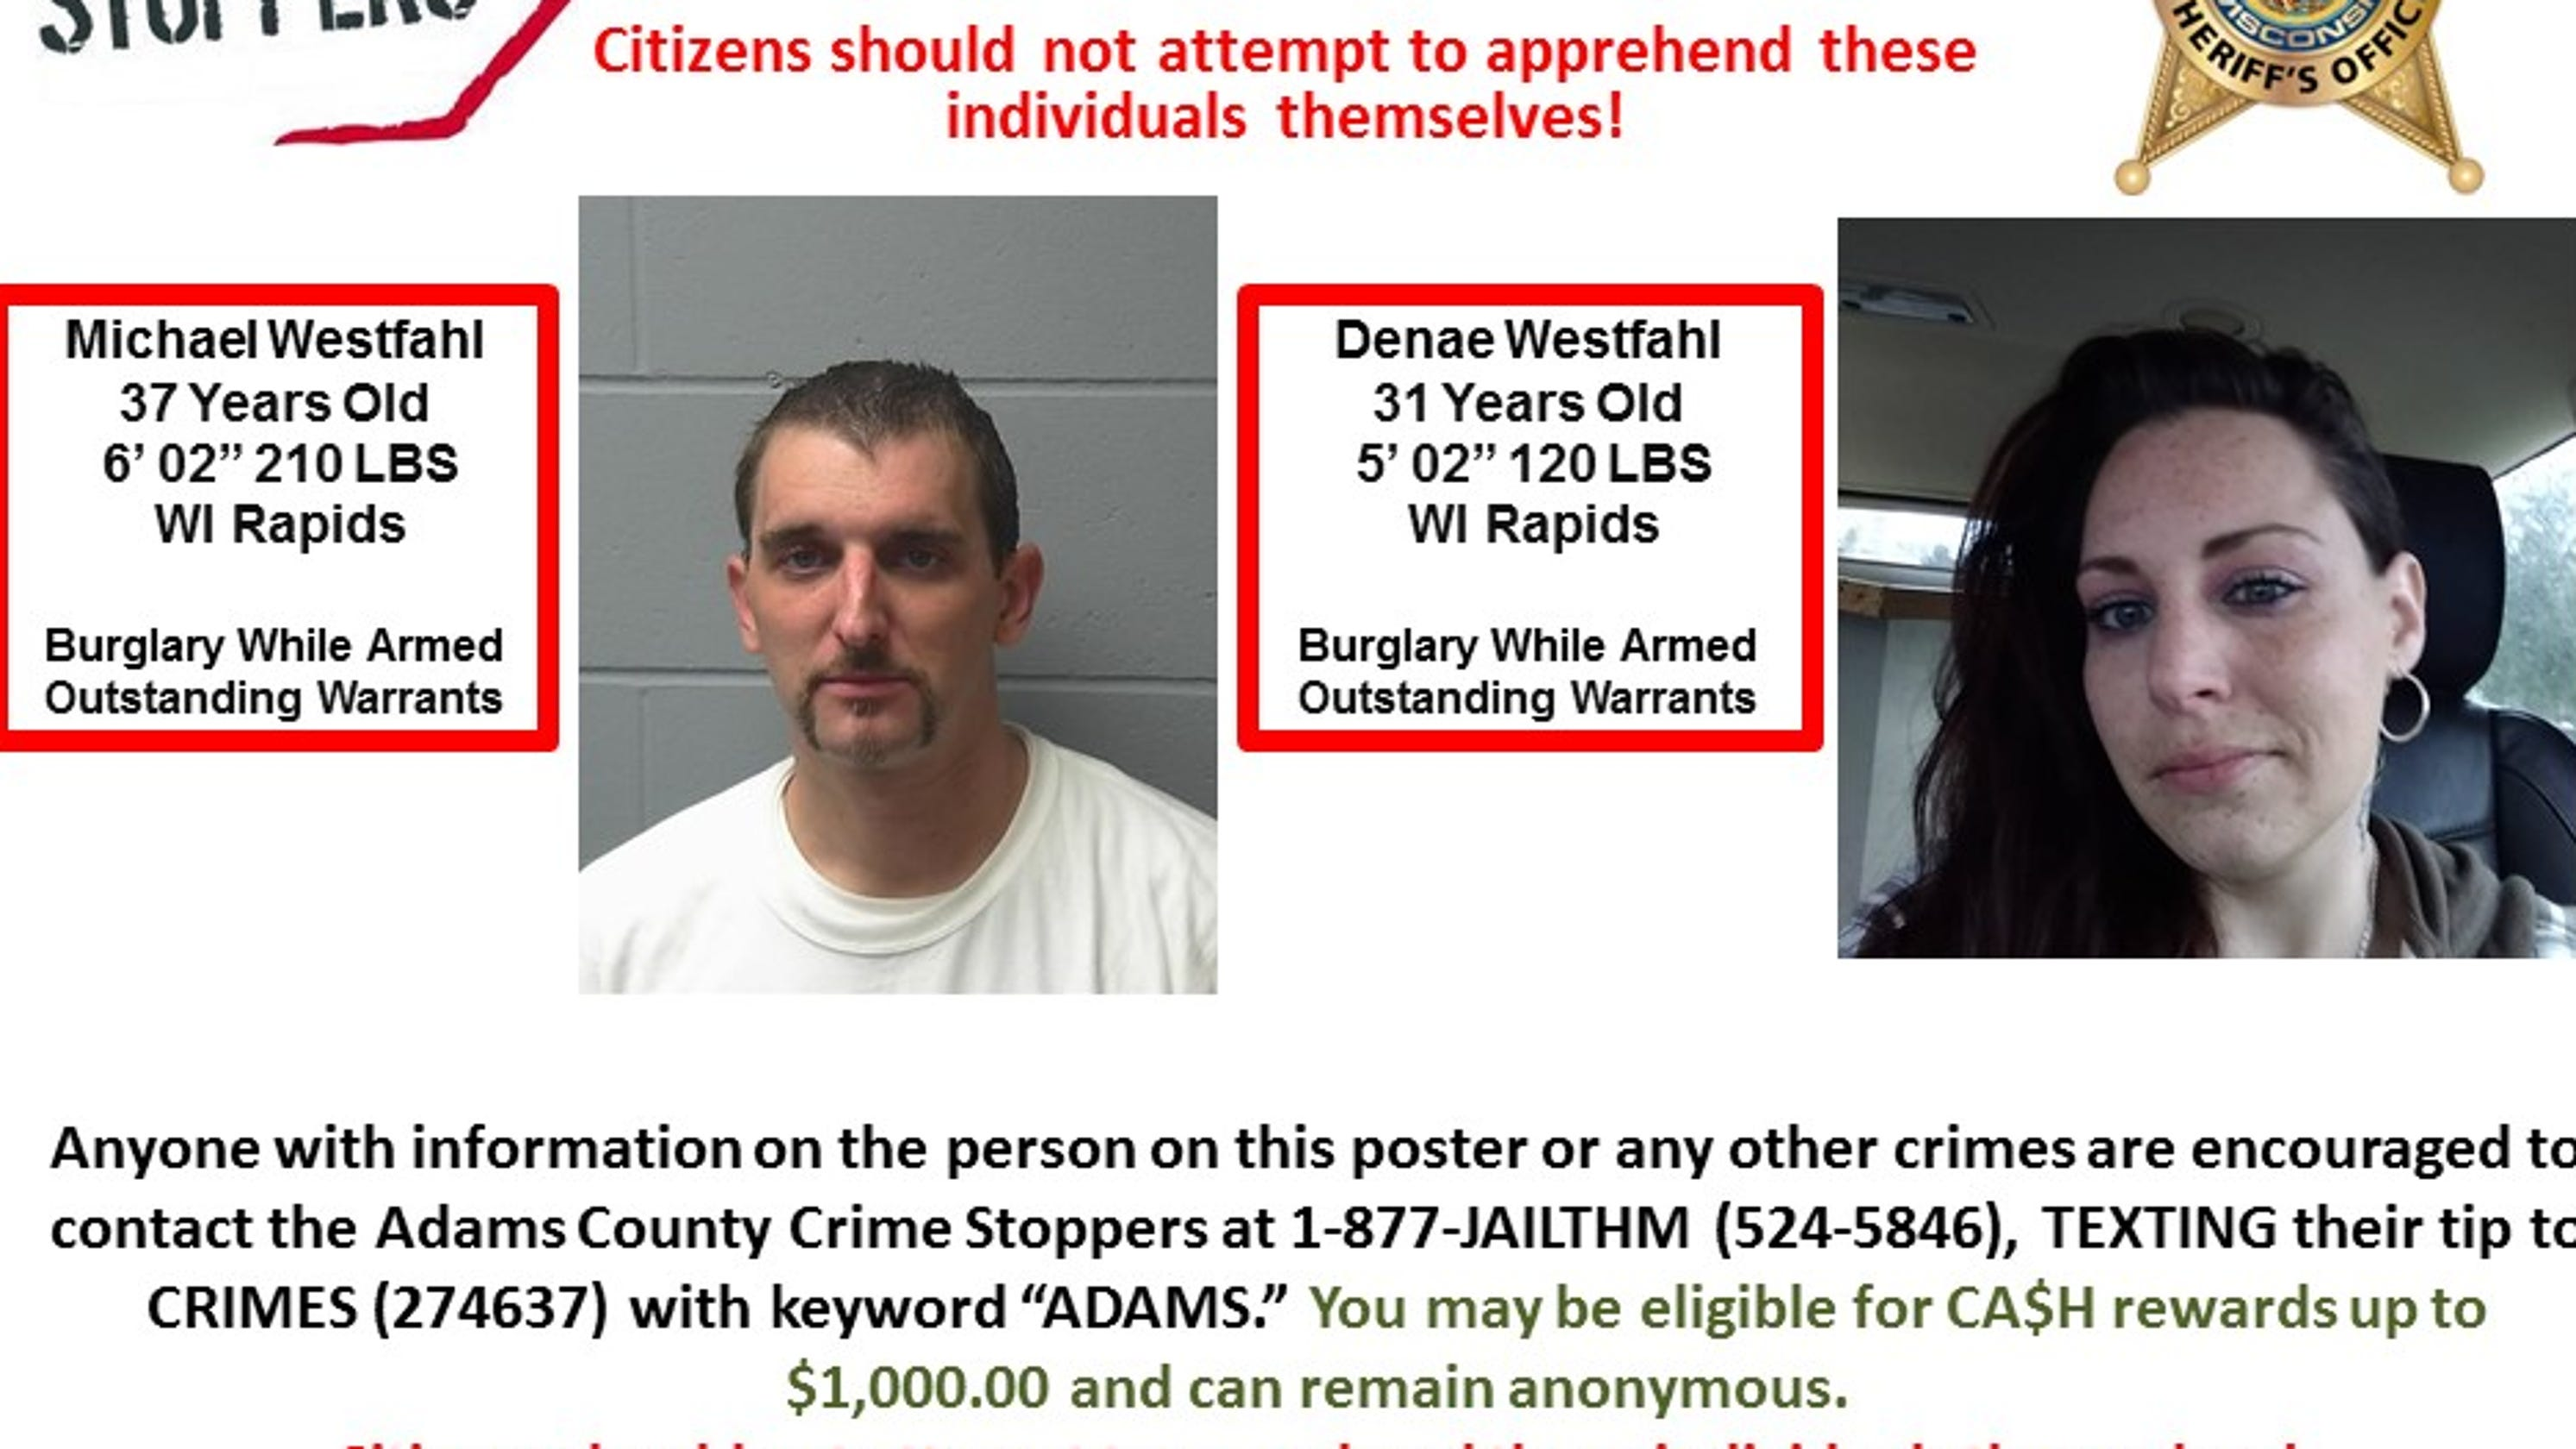 Adams County armed burglary suspects stole multiple firearms from home